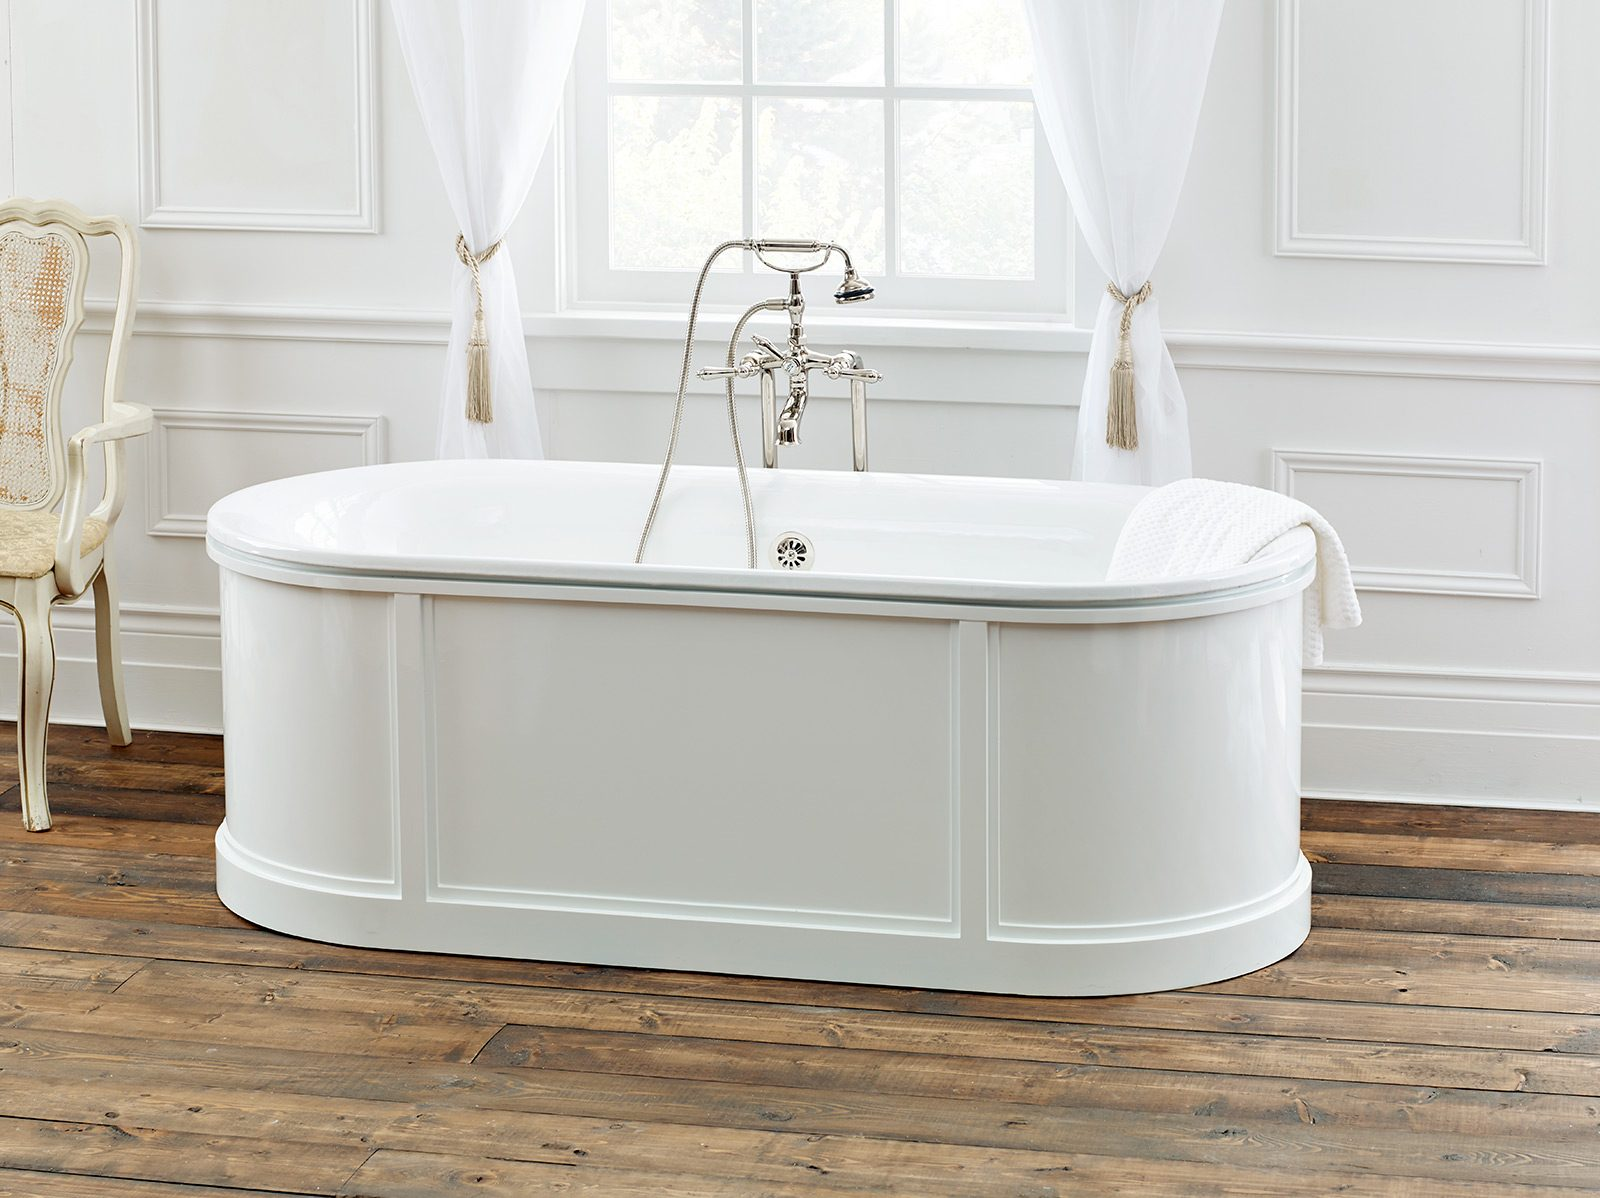 Cast iron bathtub more images cast iron clawfoot tub for Where can i buy a bathtub